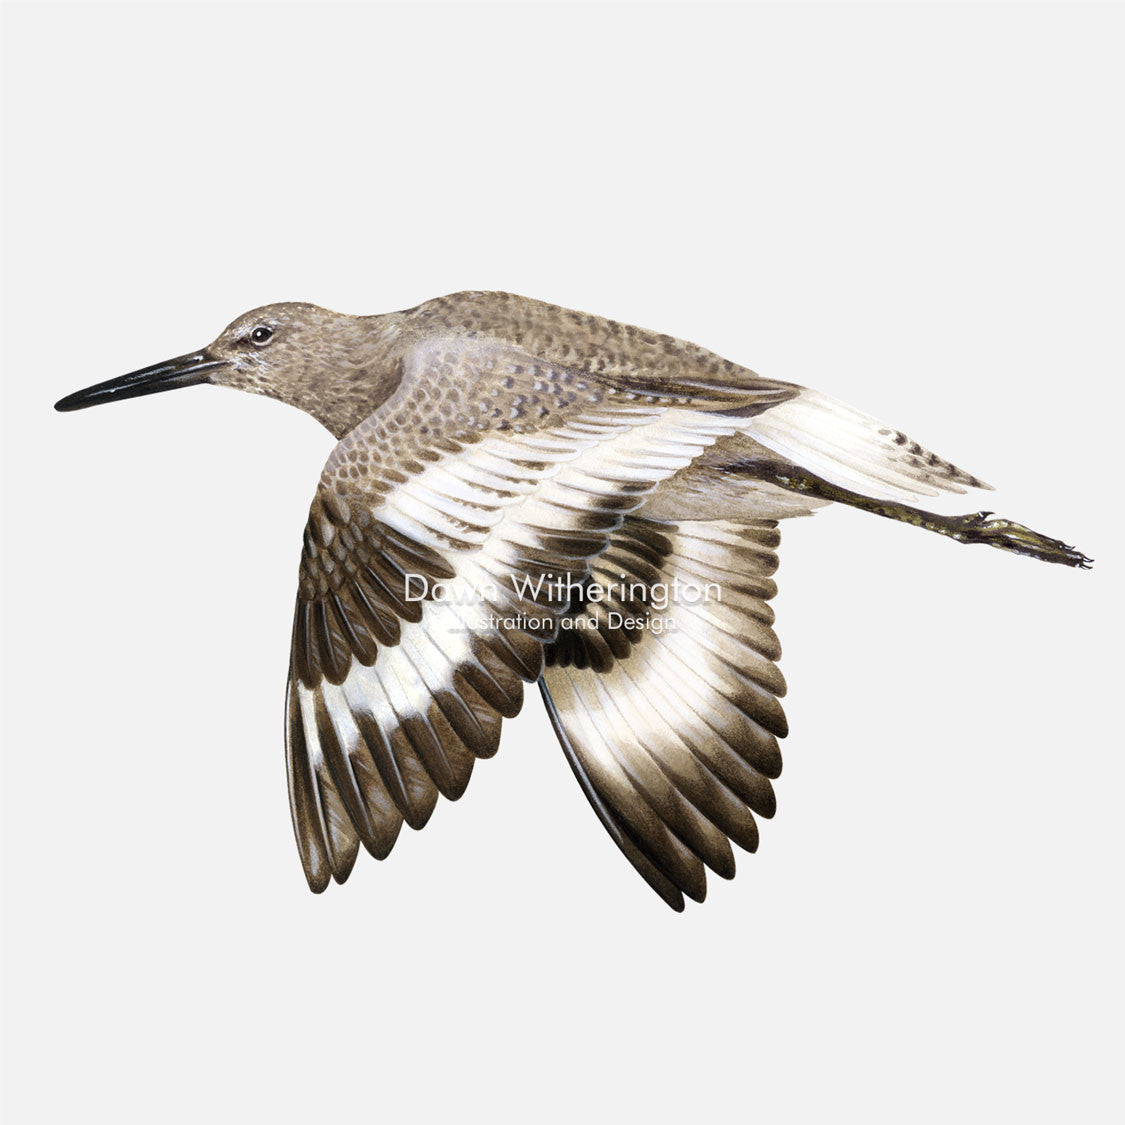 This beautiful illustration of a willet, Tringa semipalmata, in flight, is biologically accurate in detail.